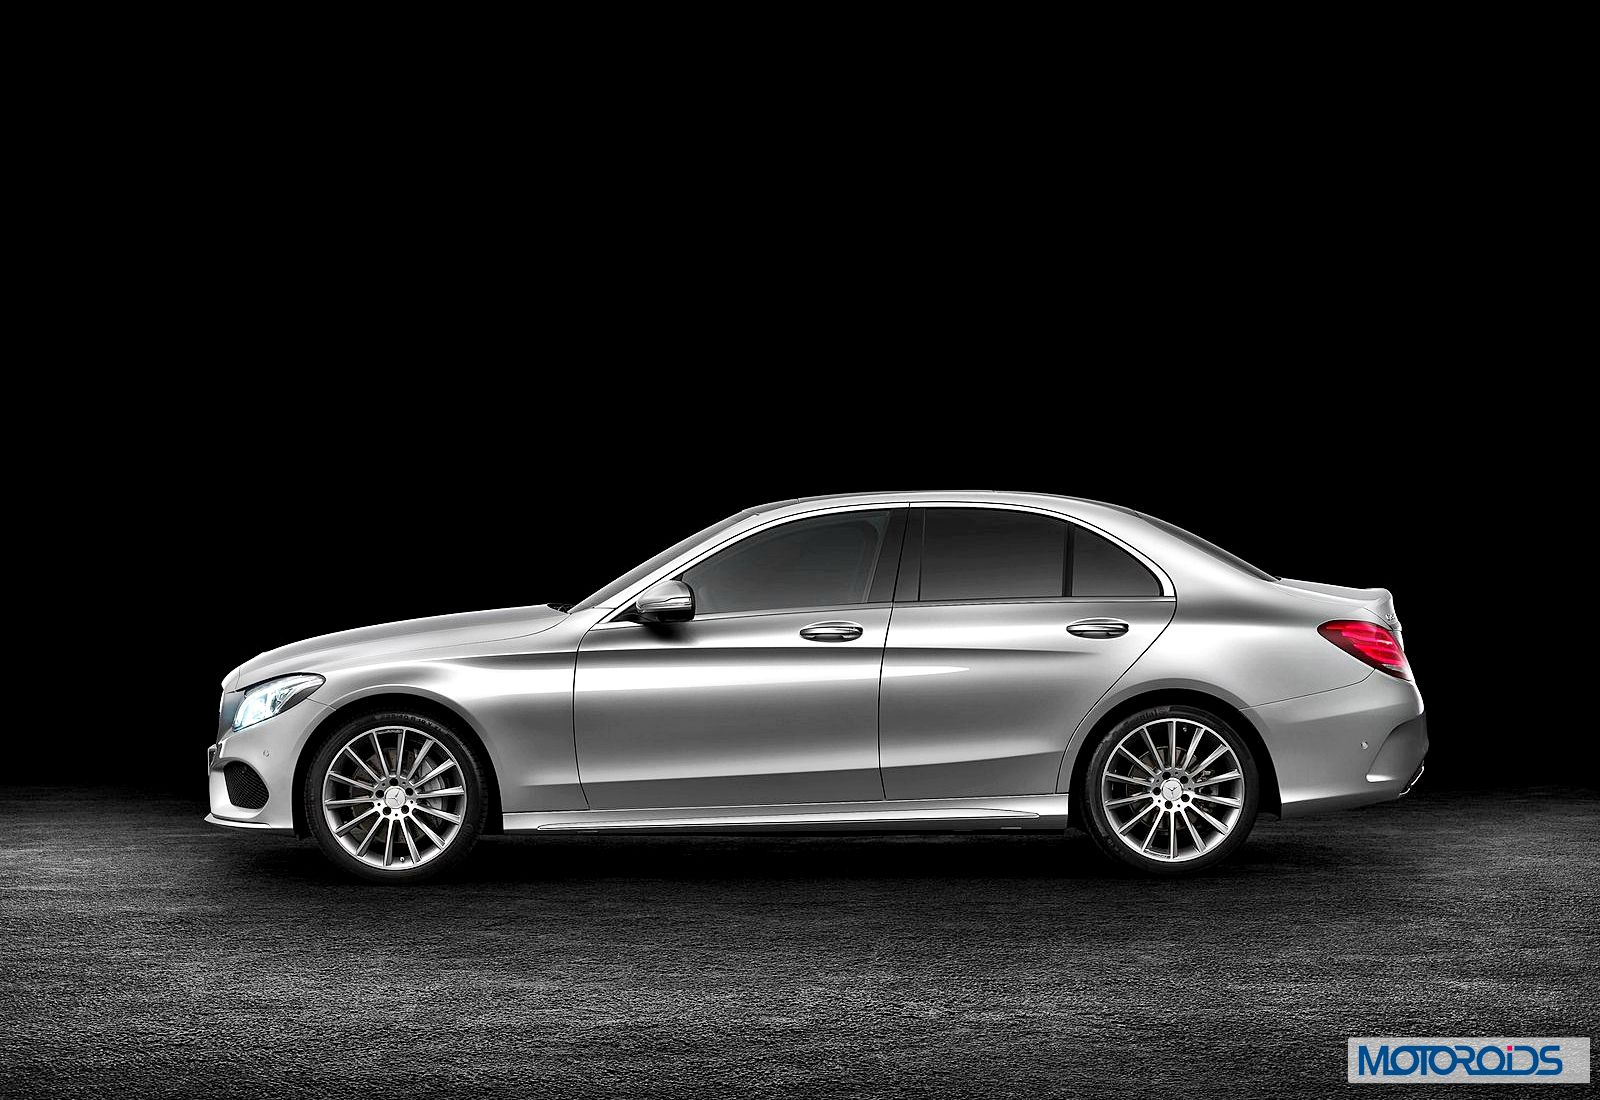 New 2015 mercedes c class india 2 for Mercedes benz c class price in india